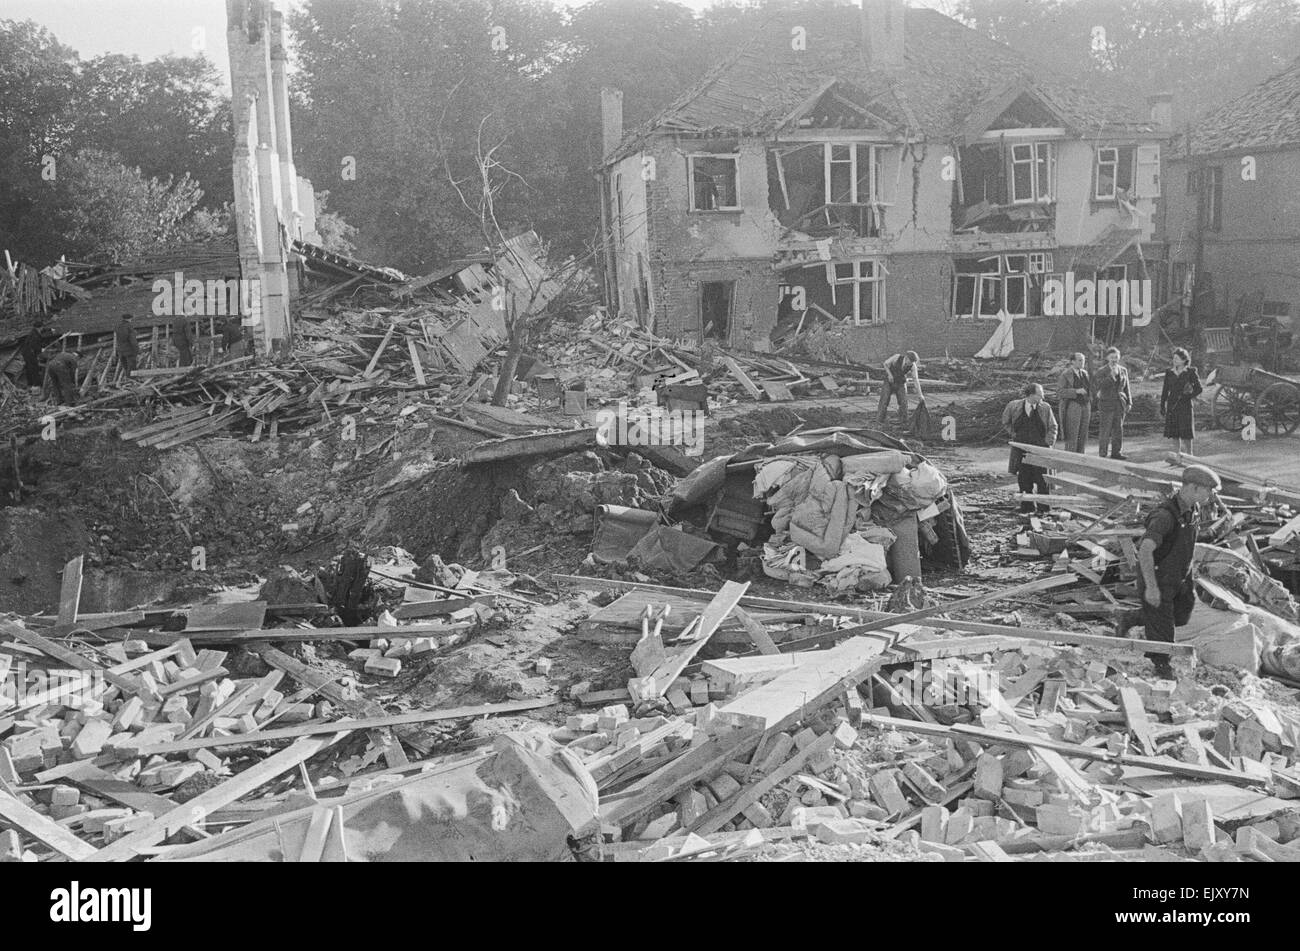 the aftermath of v2 explosion on the 8th september 1944 a huge